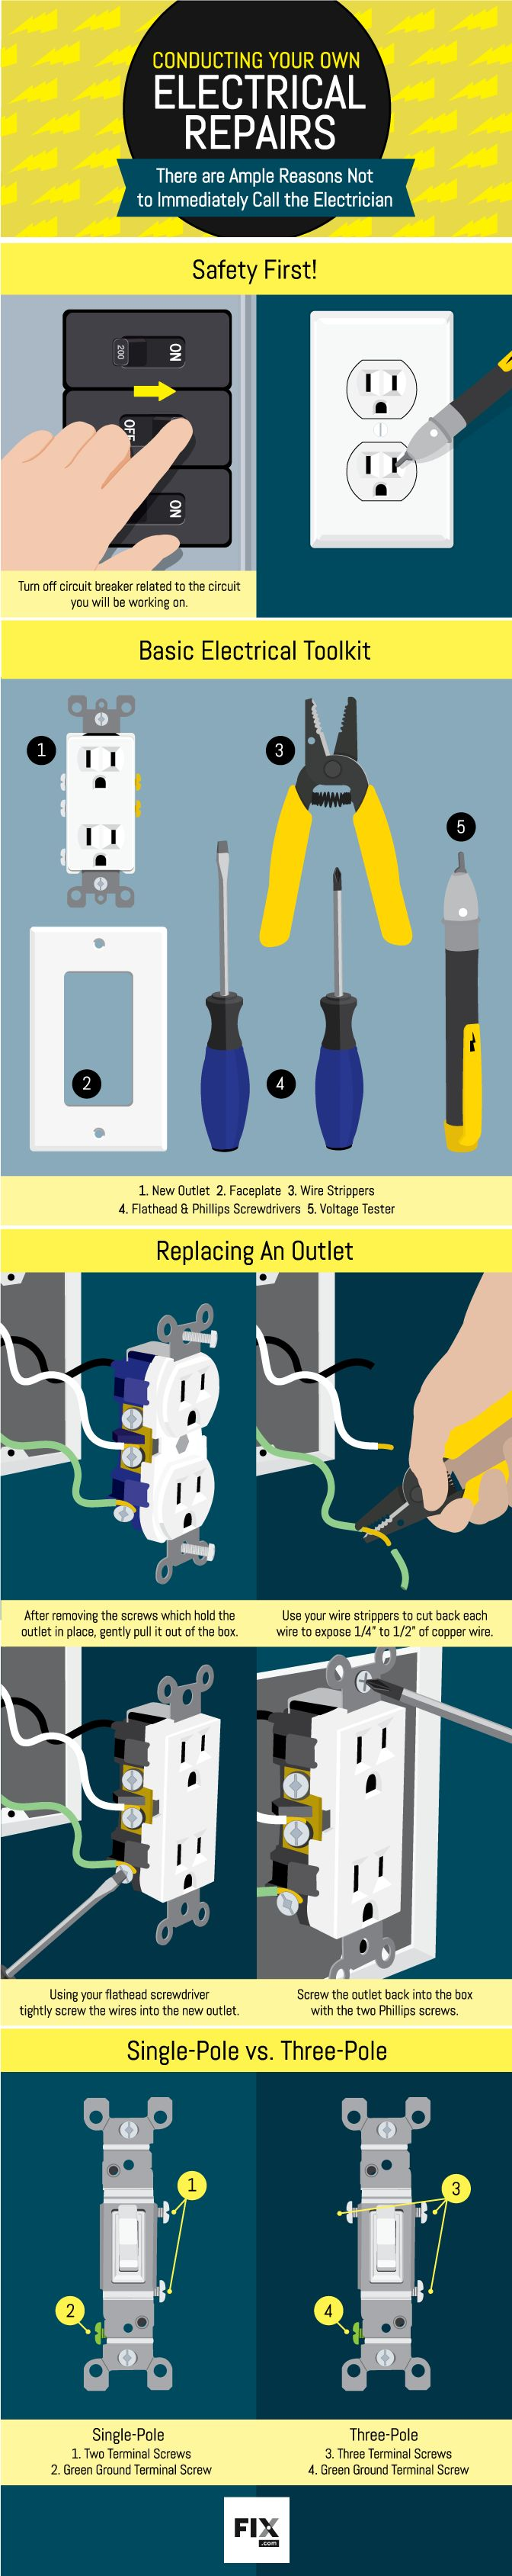 132 best Electrical images on Pinterest | Electrical projects ...